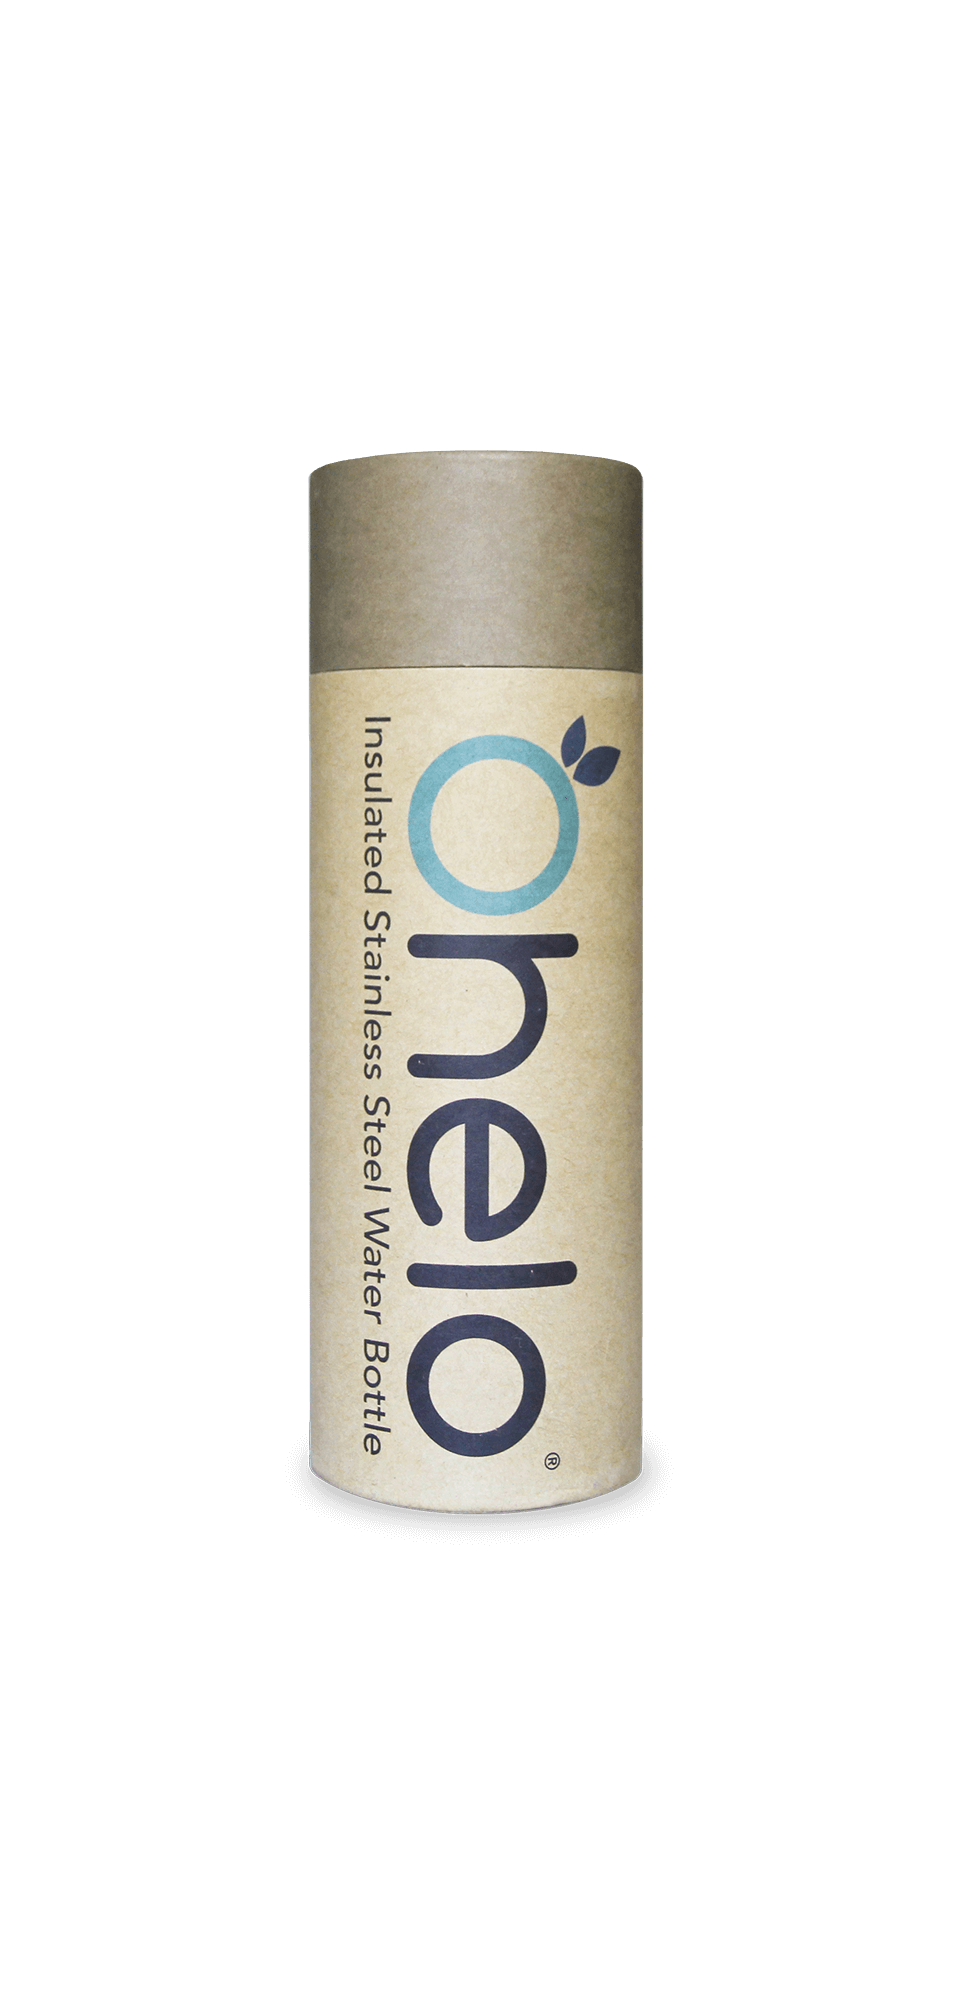 Ohelo steel water bottle box